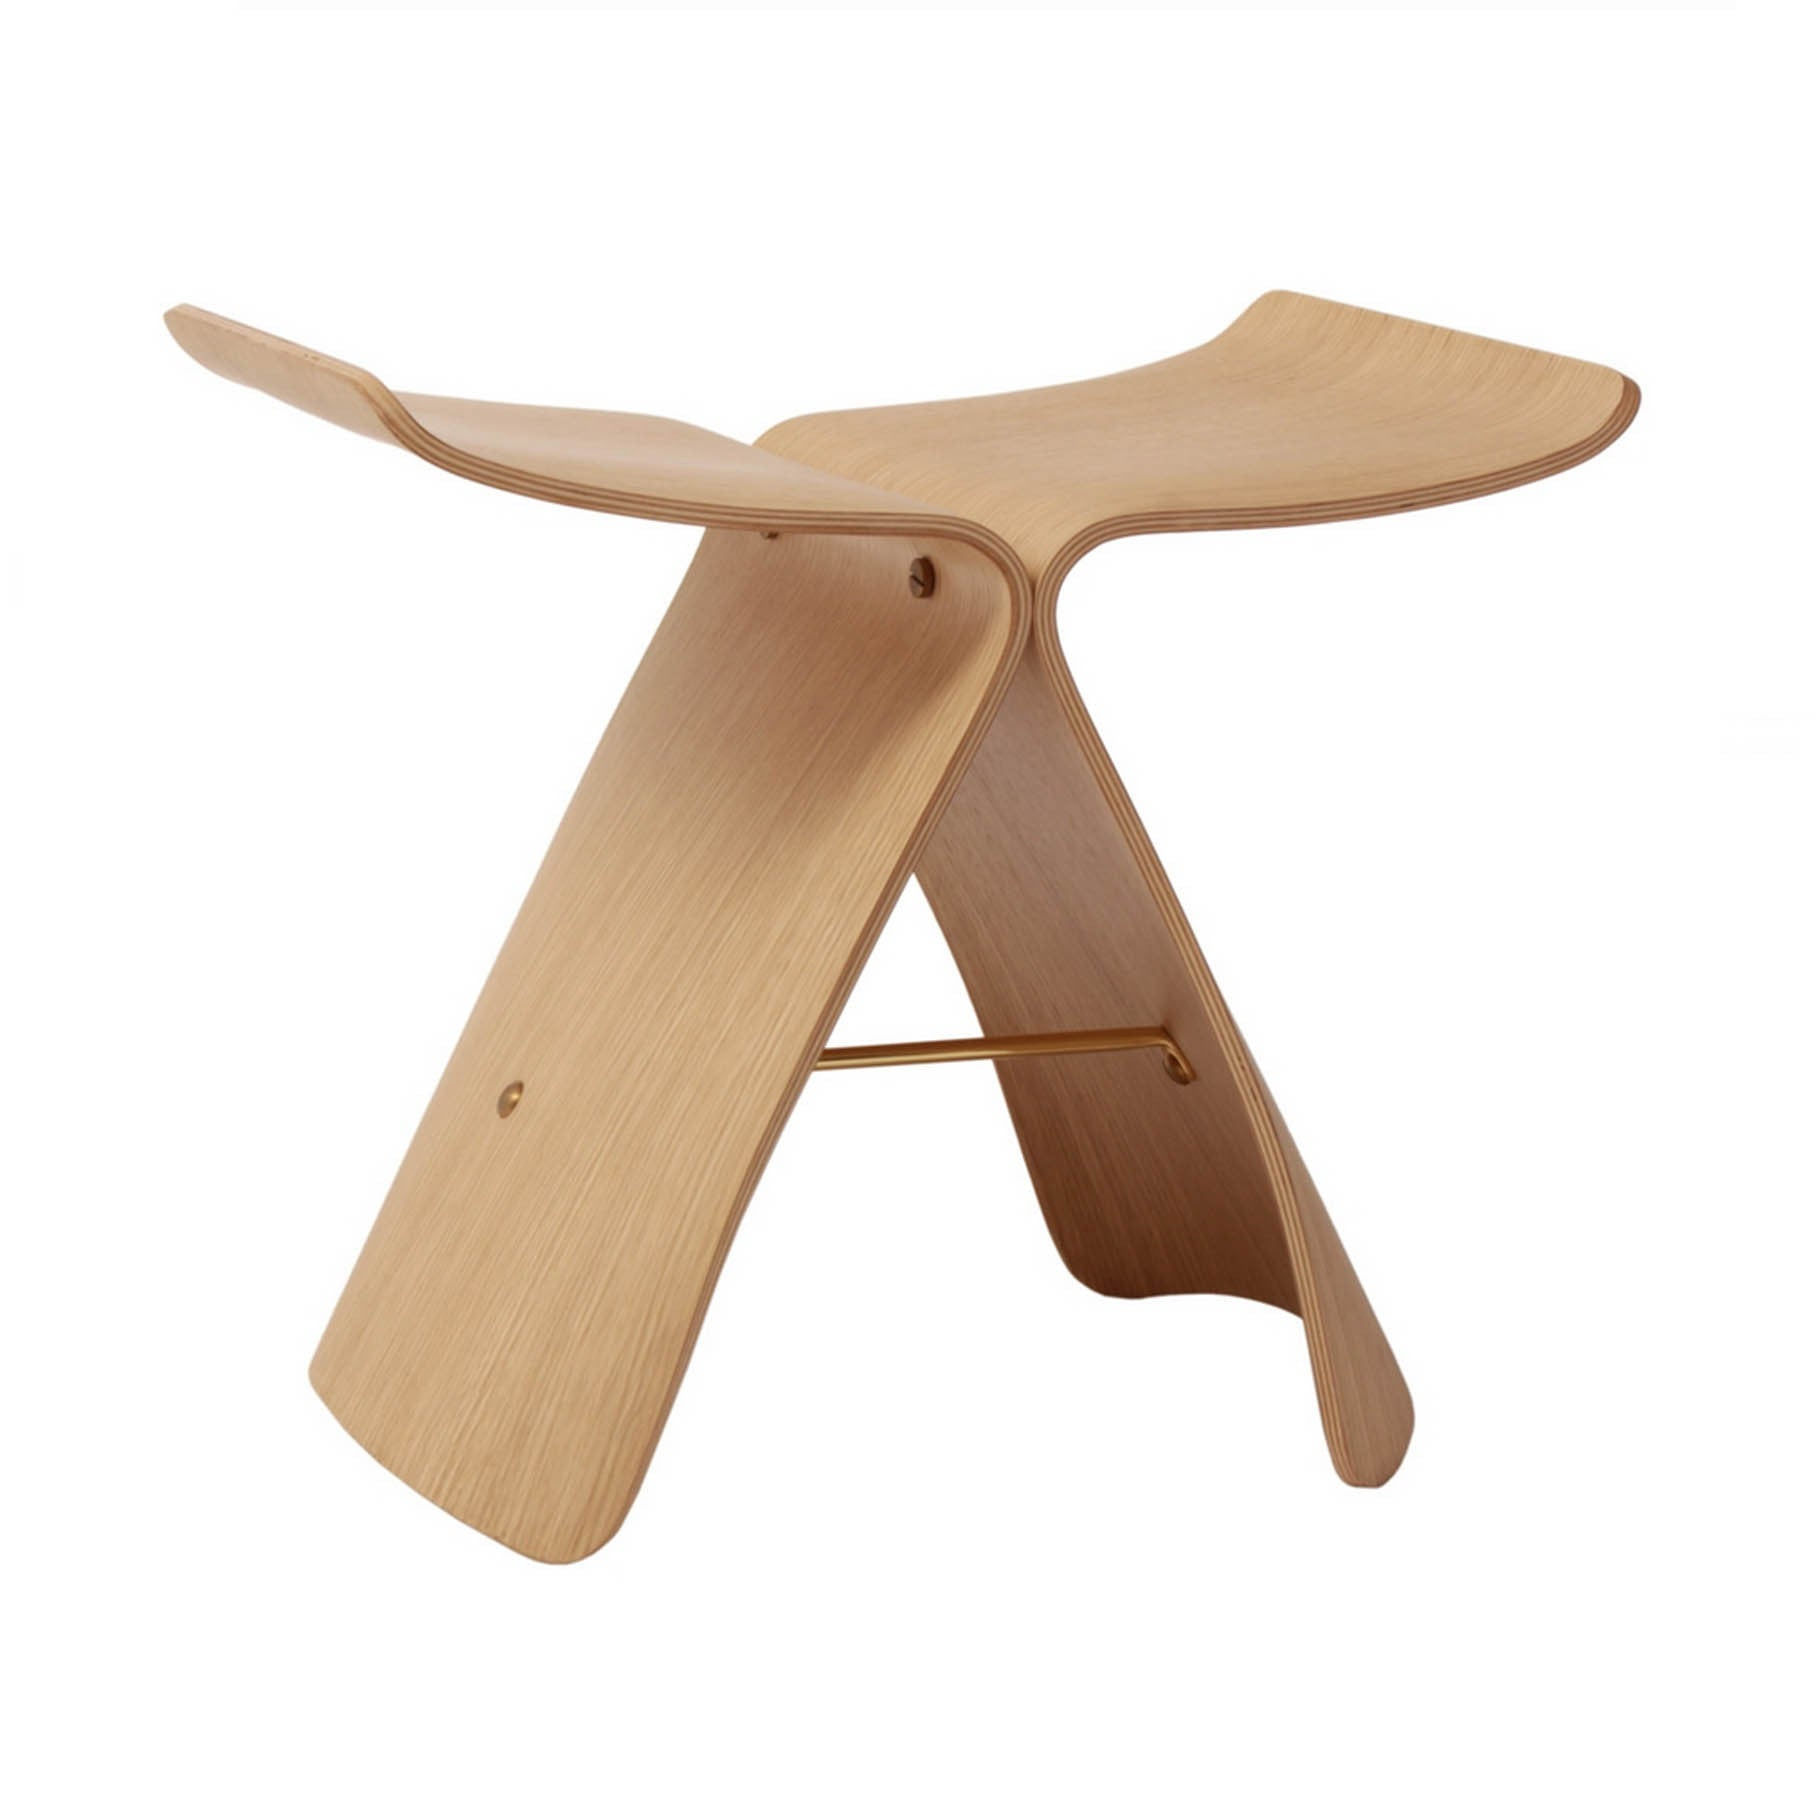 Plywood CHAIR/table BP8014-N -  كرسي خشب رقائقي / طاولة - Shop Online Furniture and Home Decor Store in Dubai, UAE at ebarza